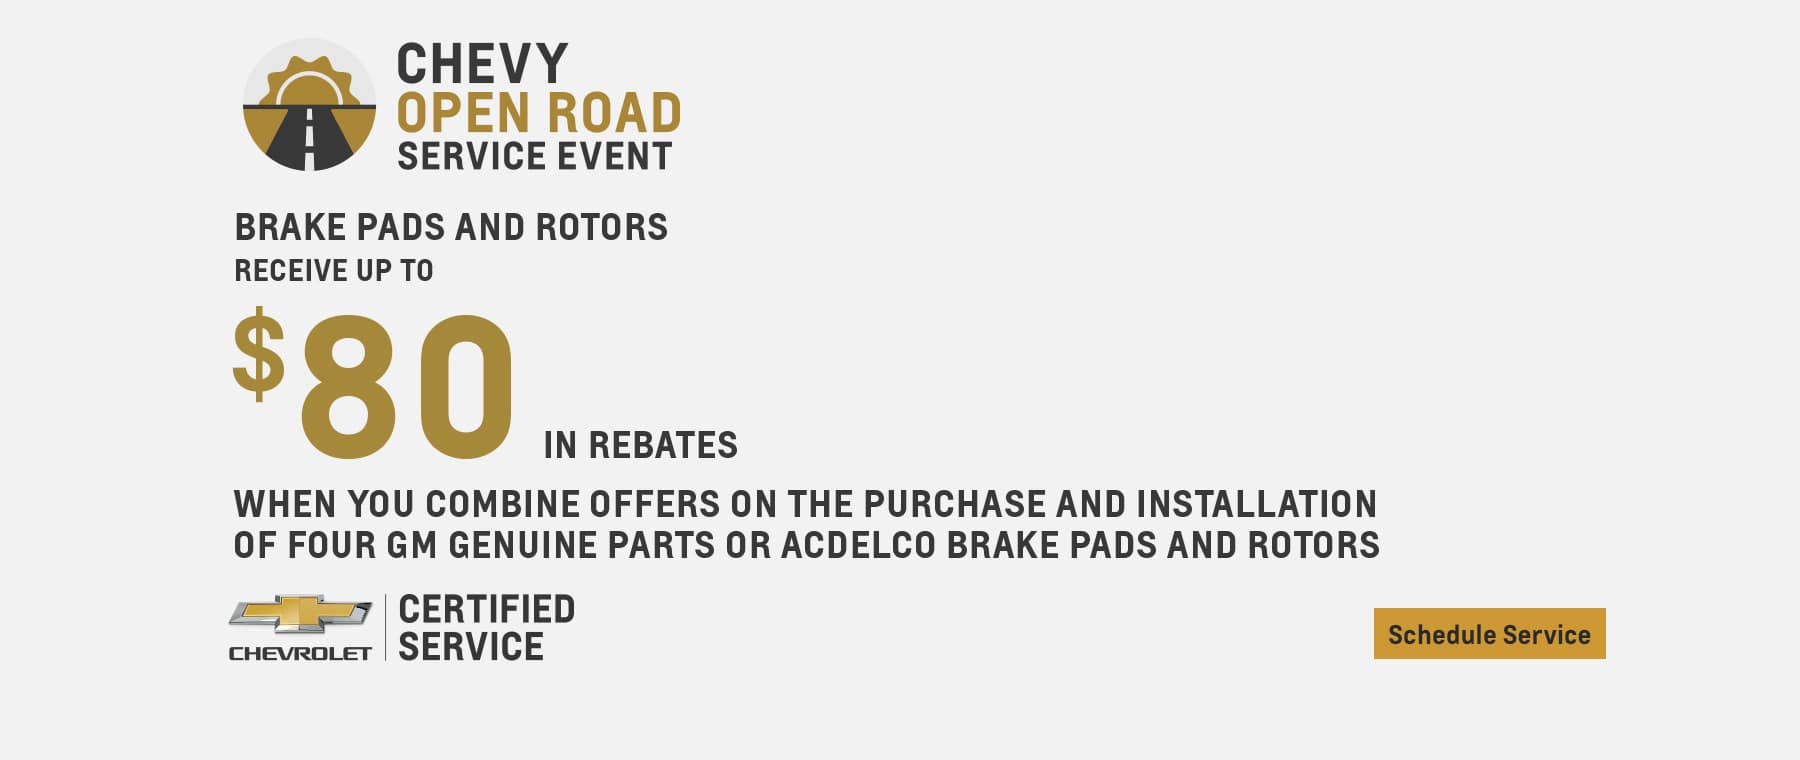 Chevy Open Road Service Event Brake Pads and Rotor